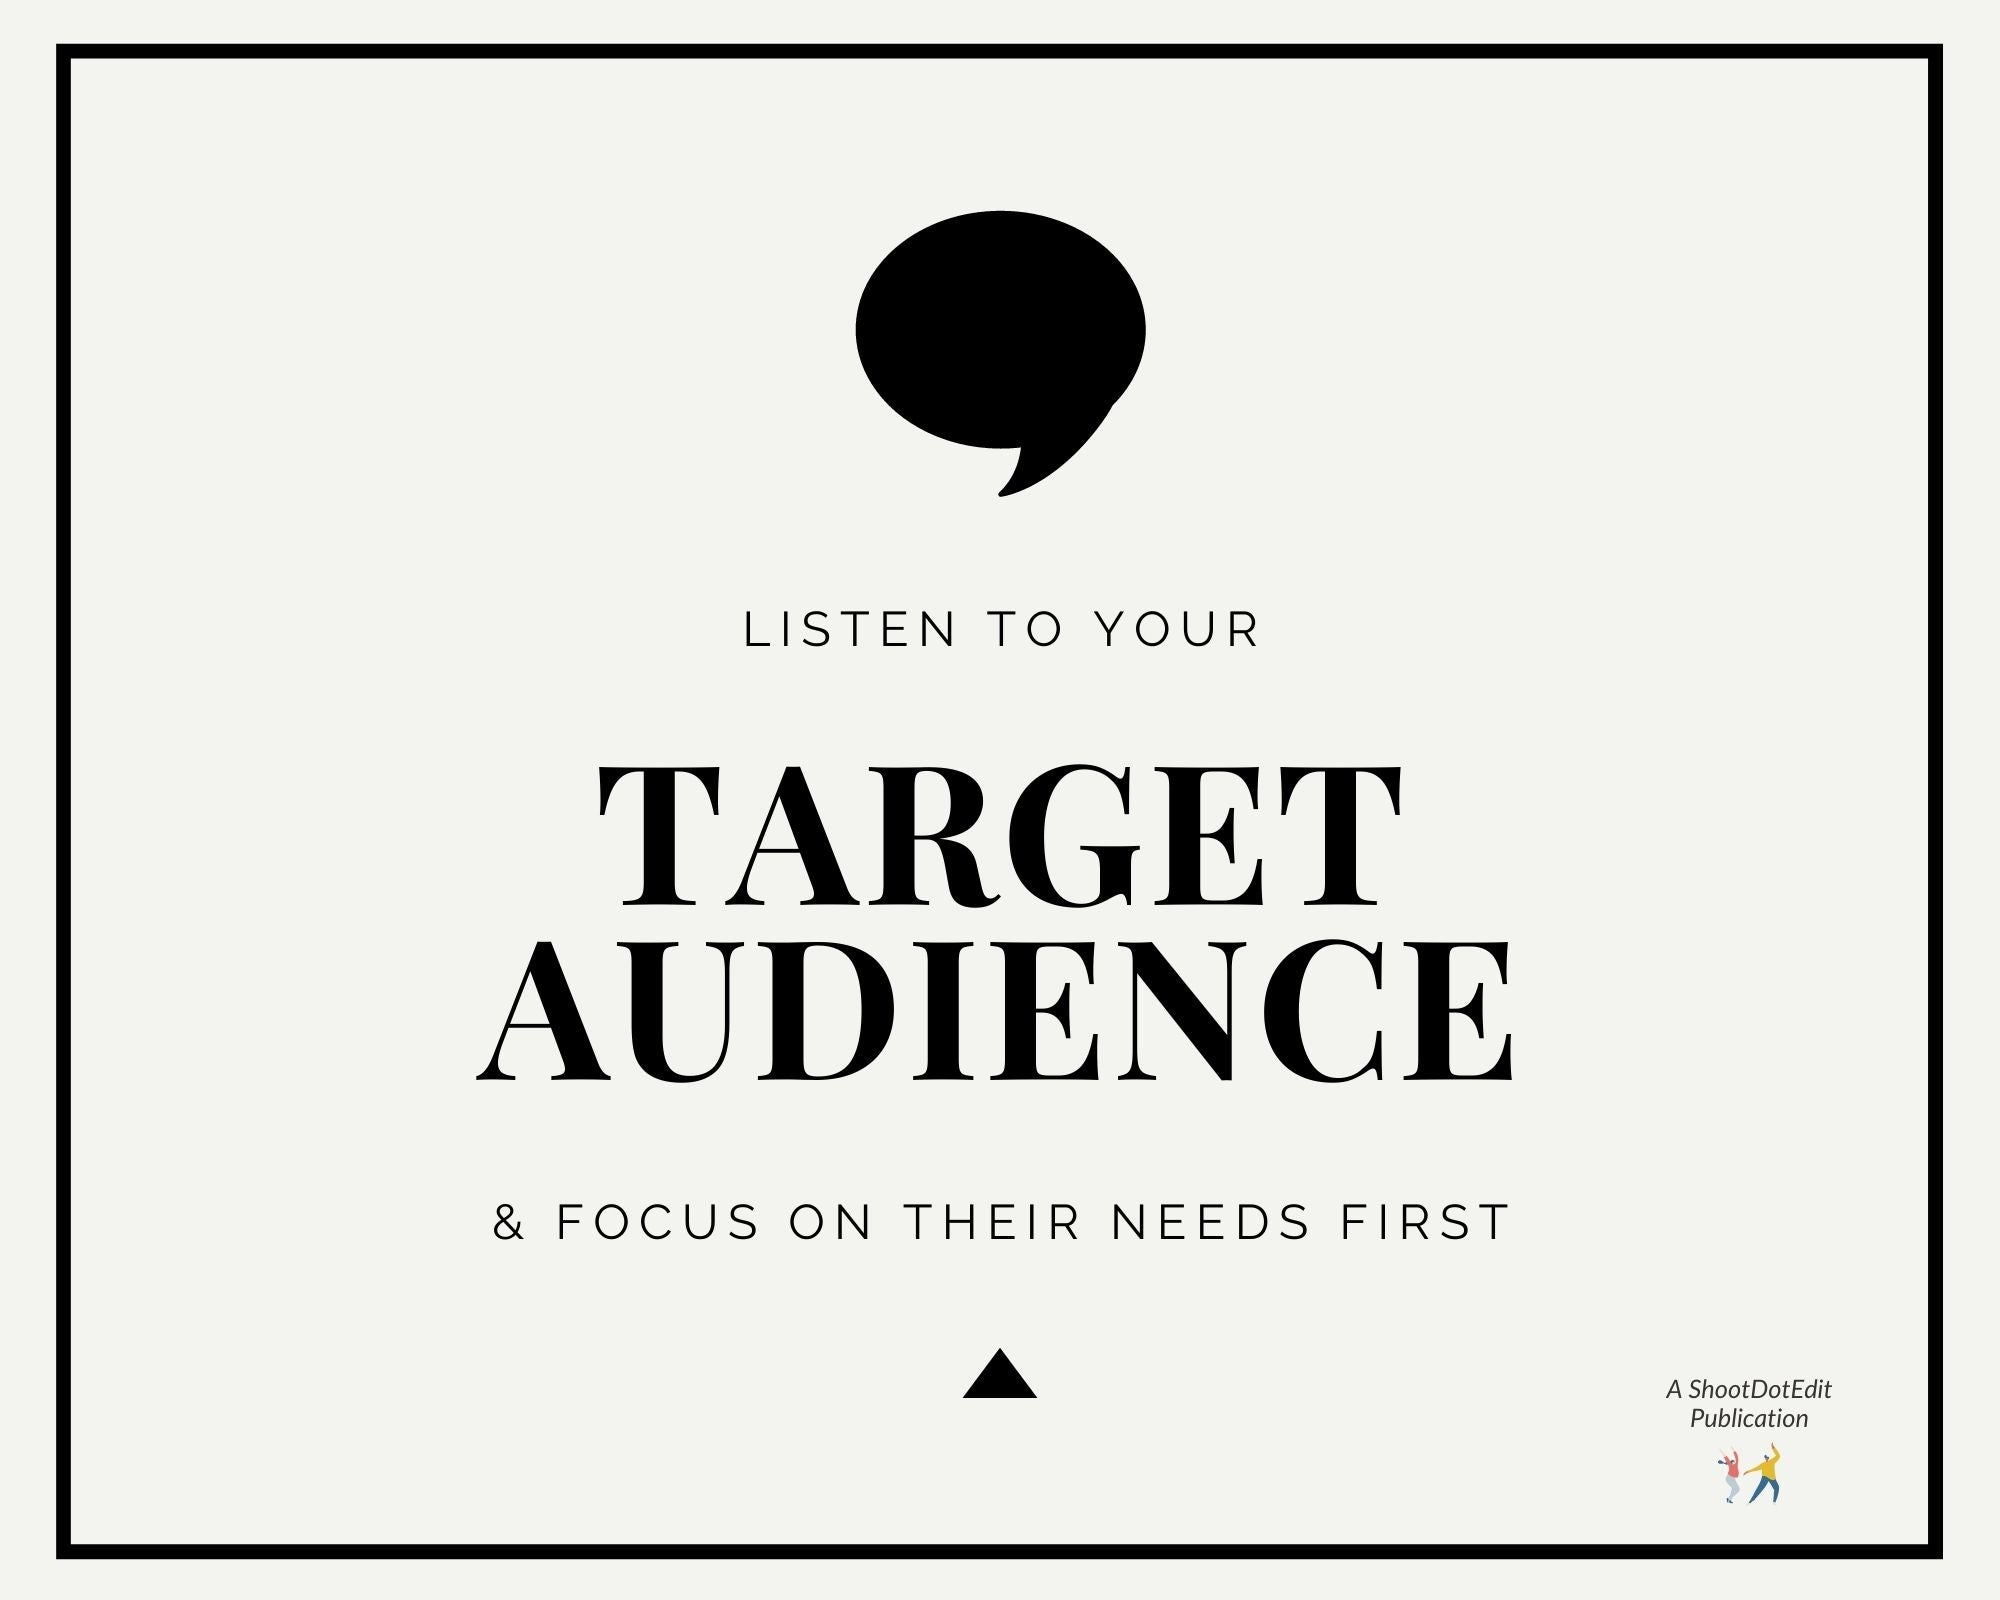 Infographic stating listen to your target audience and focus on their needs first